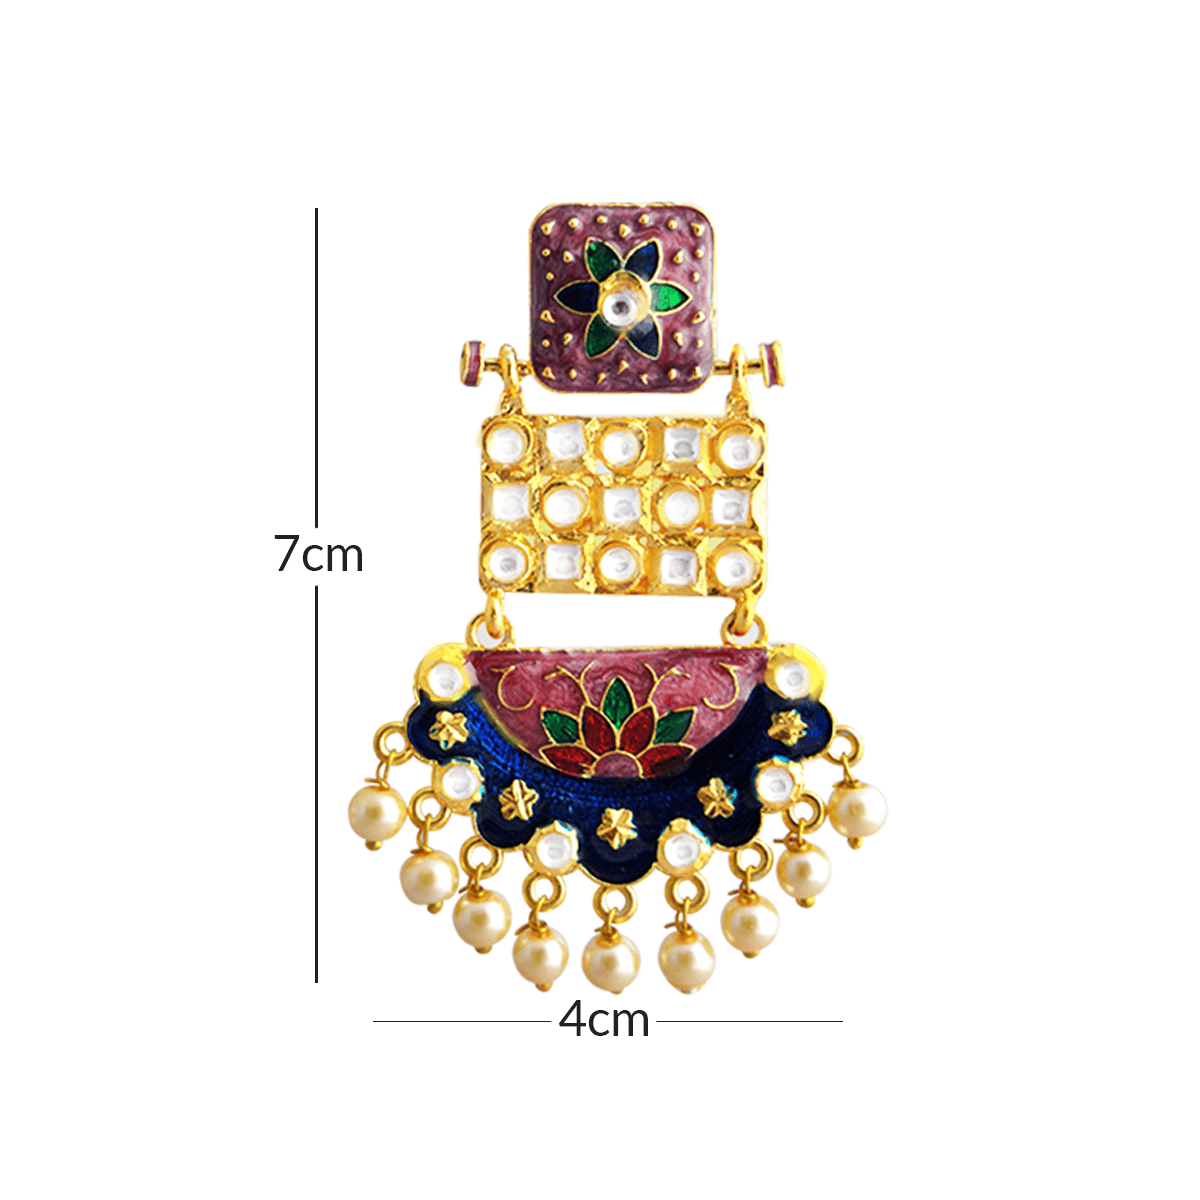 MK Jewellers Vioult Blues Color With Kundan Stone Meenakari Dangler Earring-MK JEWELLERS1-Earring